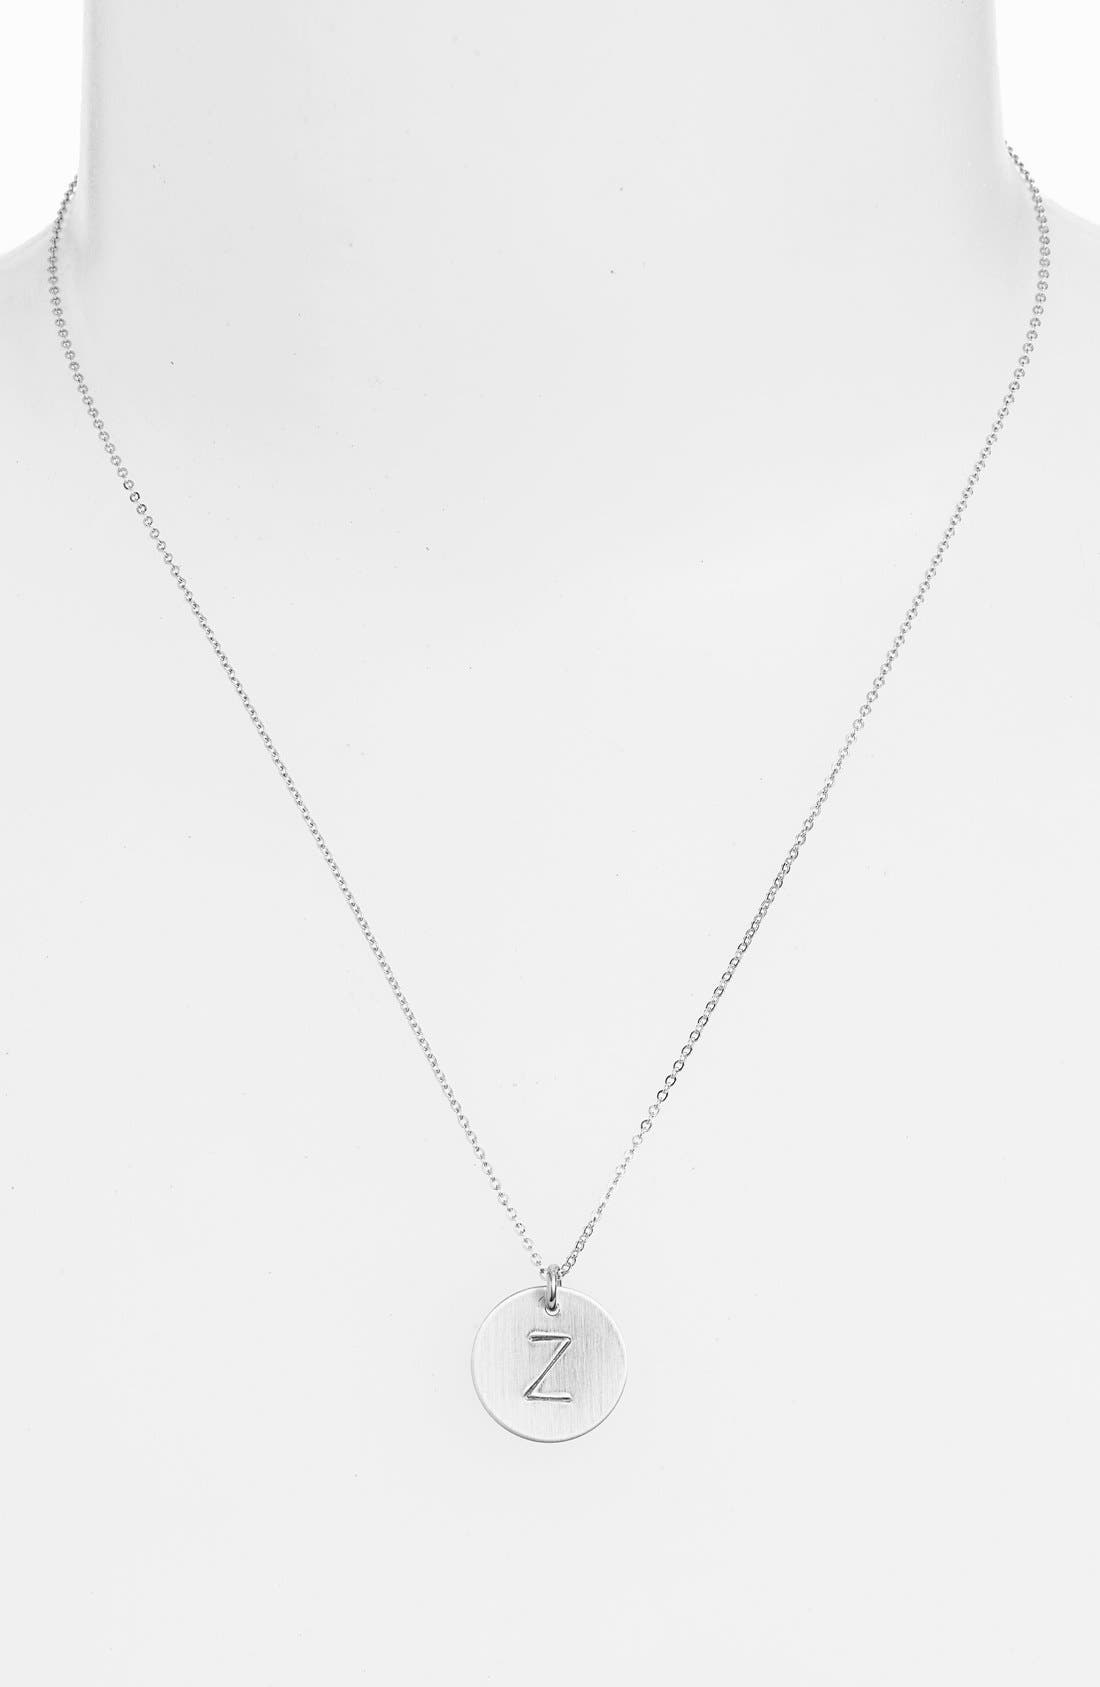 Nashelle Sterling Silver Initial Disc Necklace